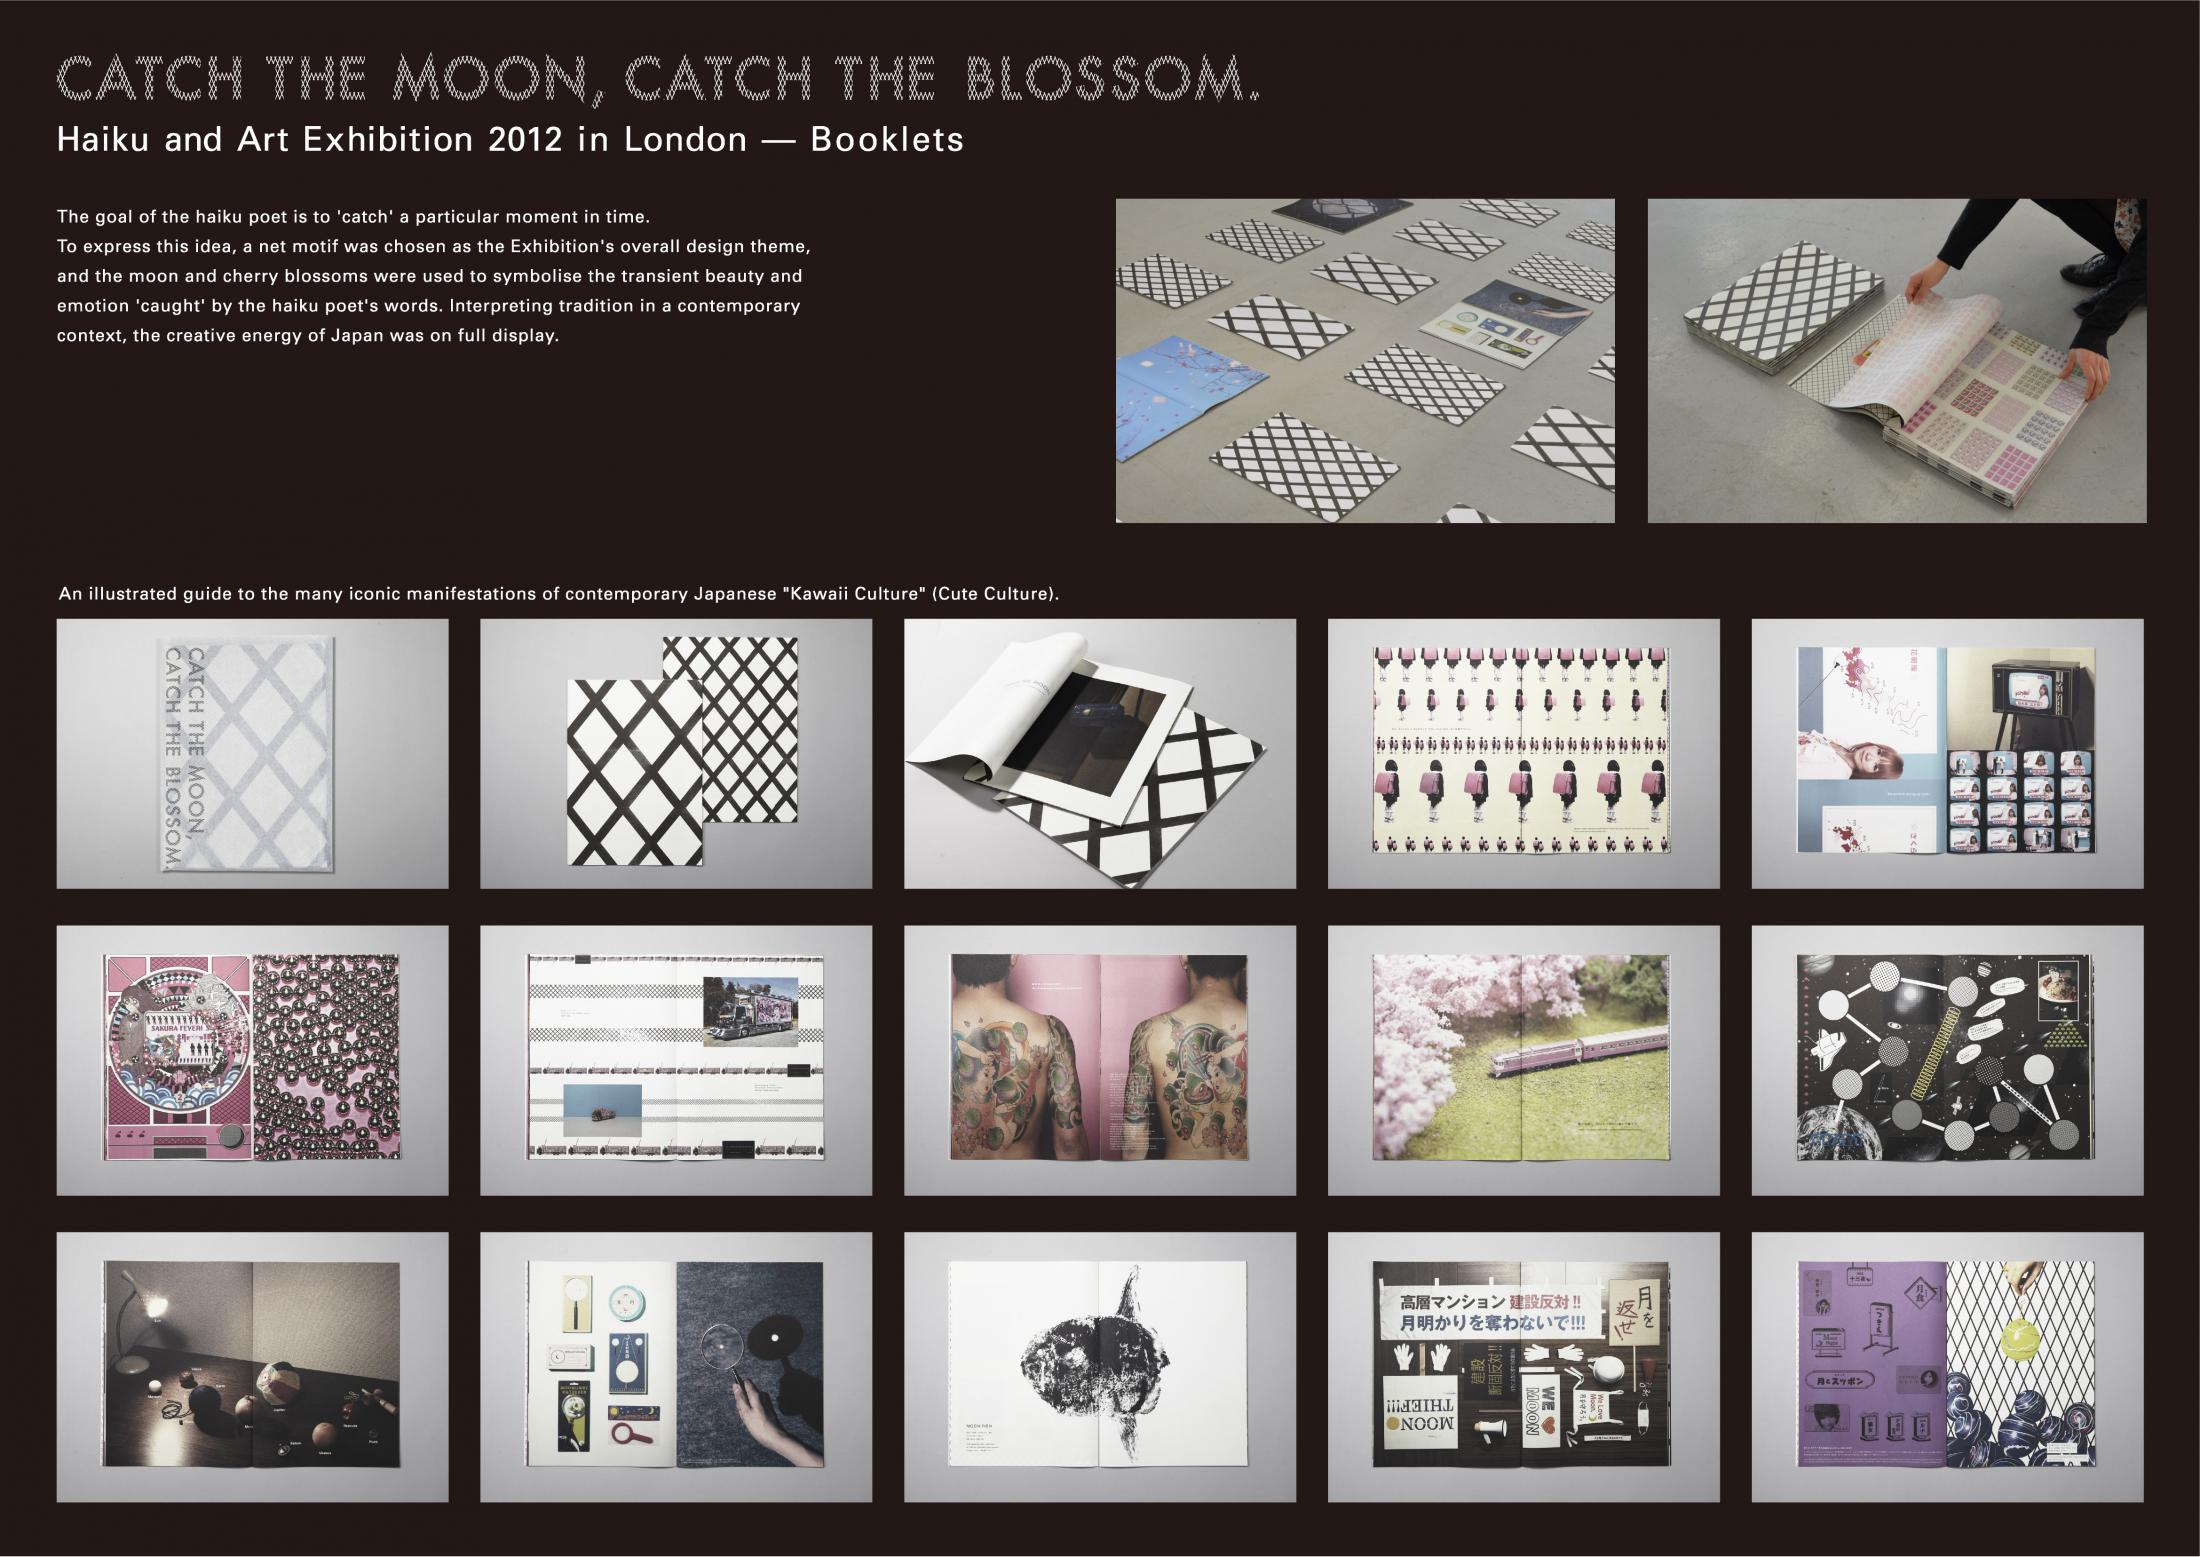 Image Media for CATCH THE MOON,CATCH THE BLOSSOM.